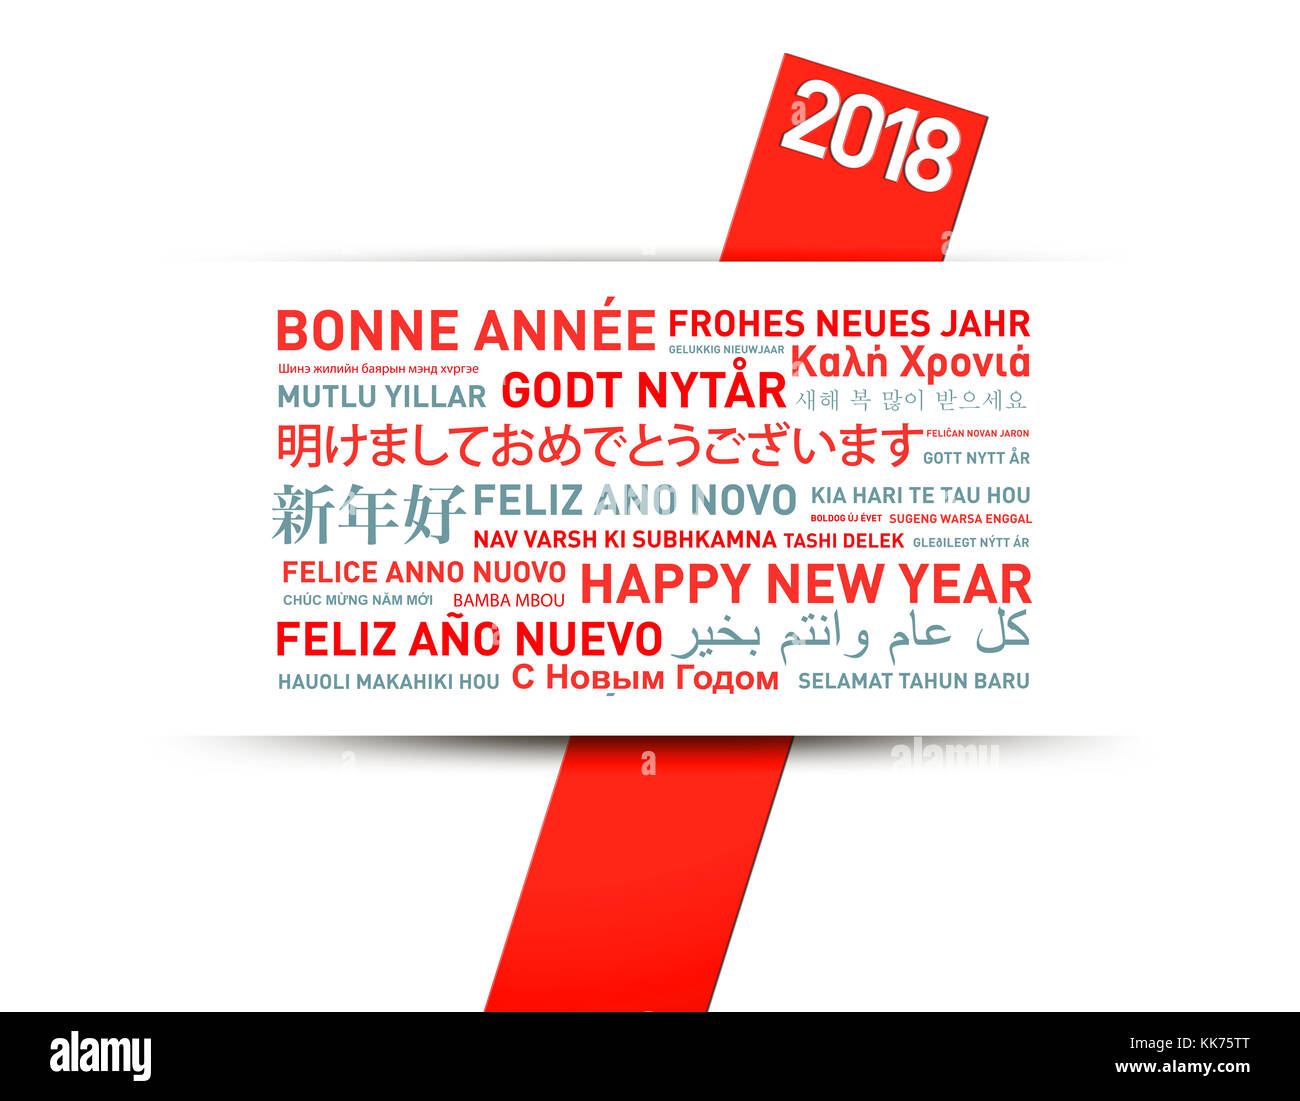 Happy new year in different languages stock photos happy new year happy new year greetings card from the world in different languages stock image m4hsunfo